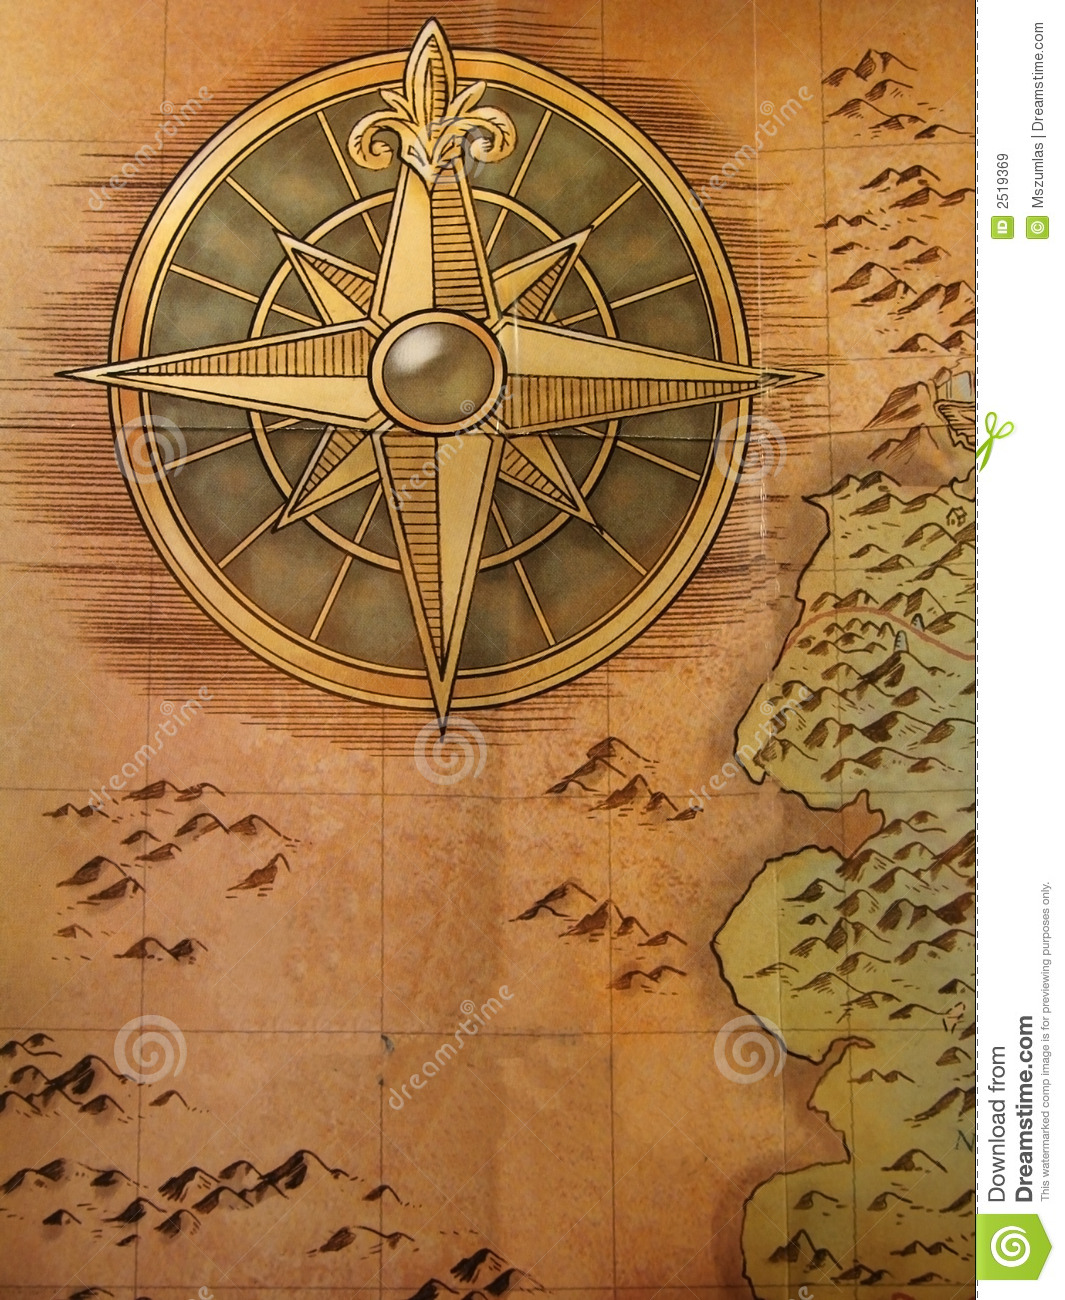 Http Www Dreamstime Com Royalty Free Stock Images Old Map Image2519369